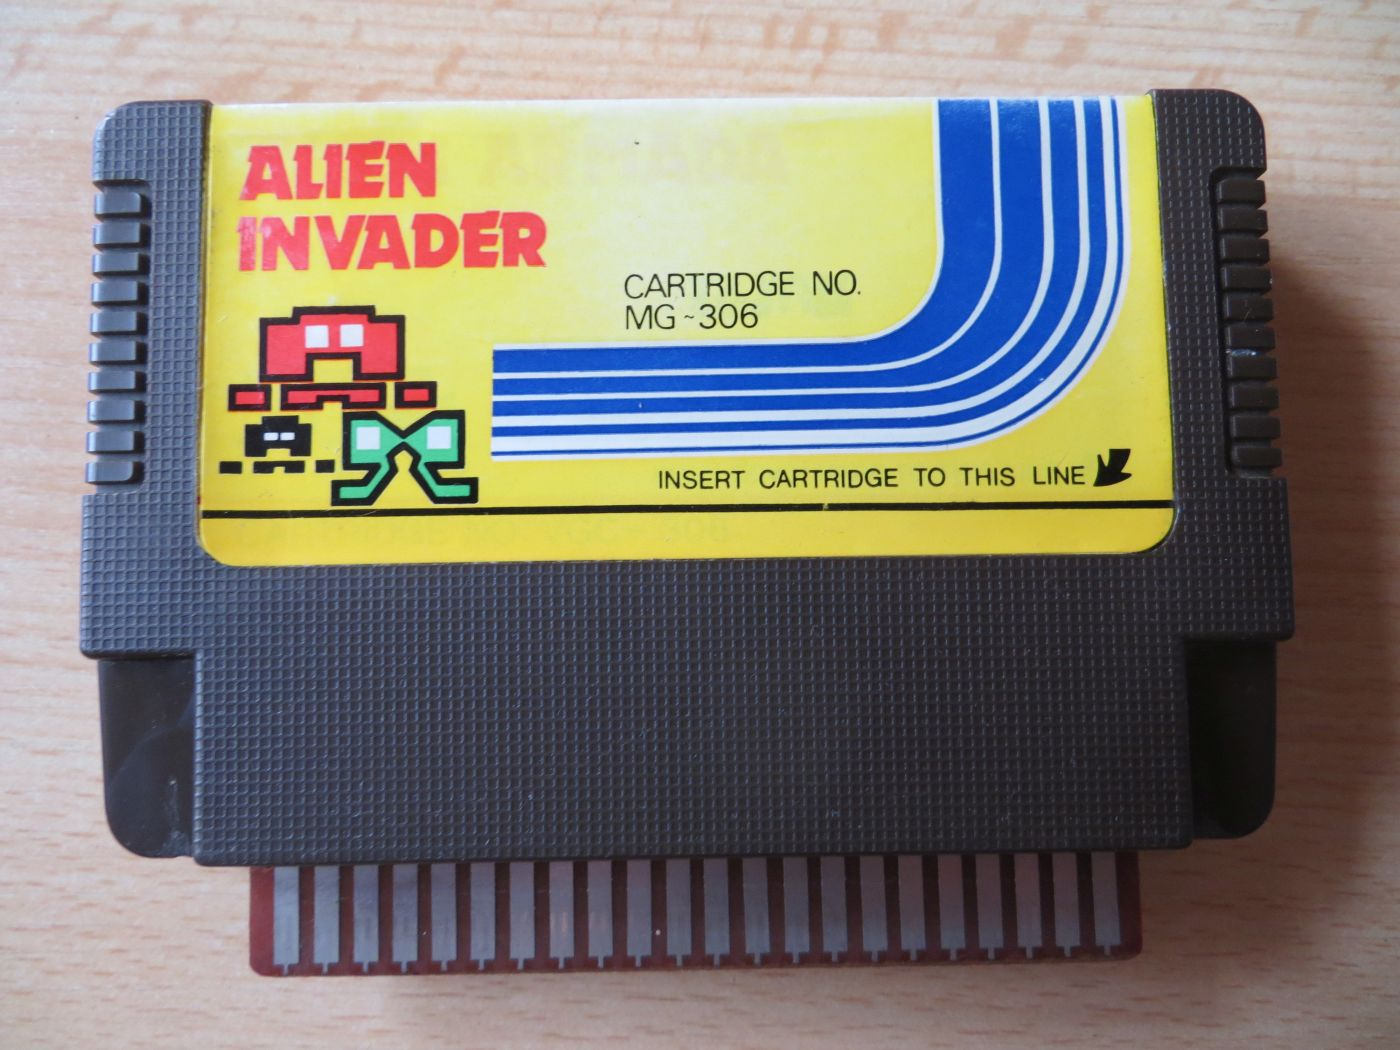 Alien Invader - Cartridge